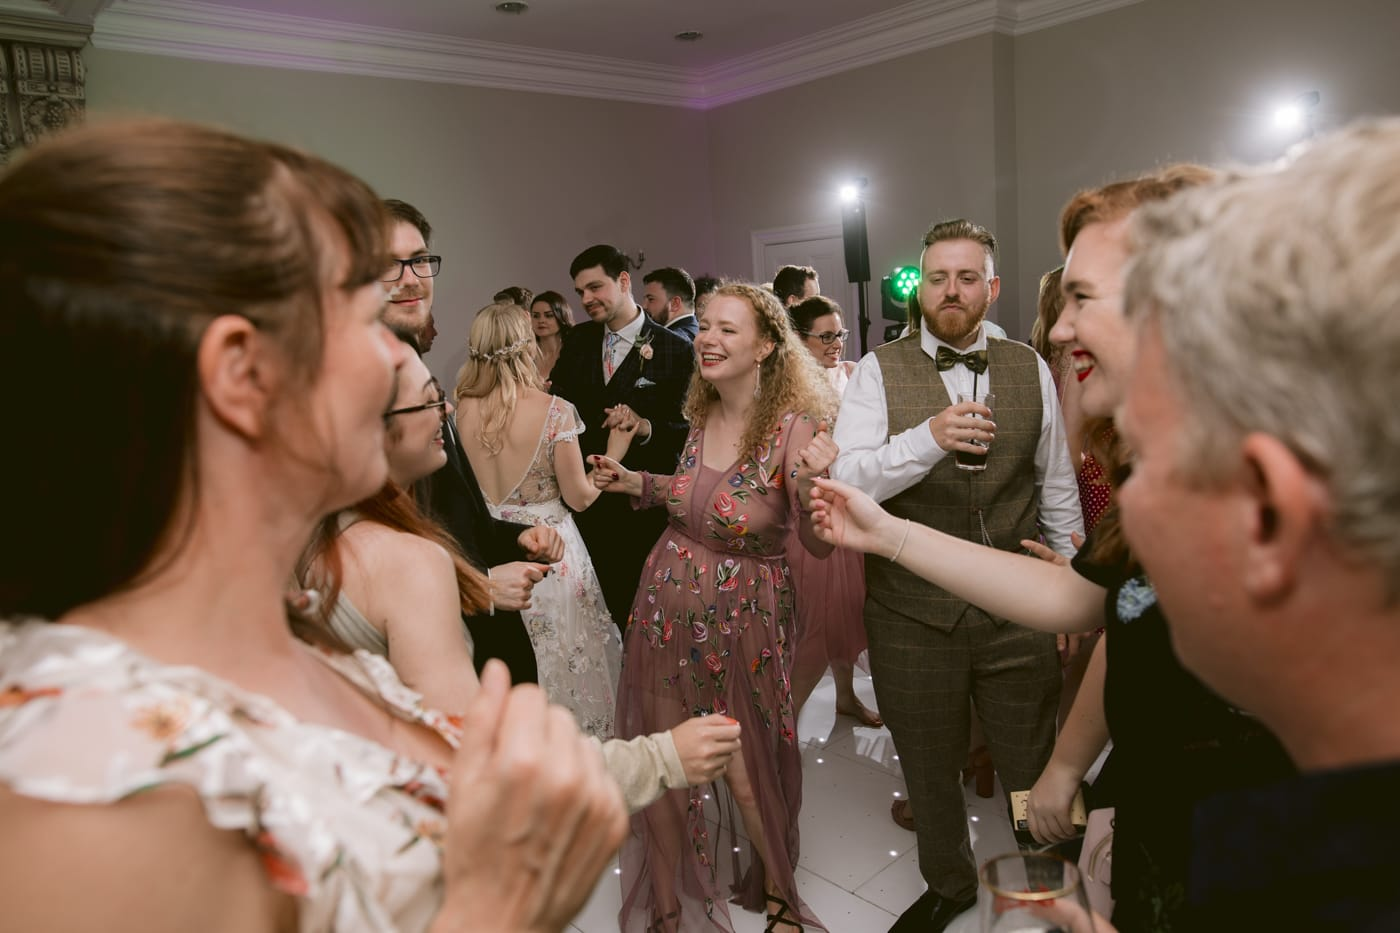 Guests on the Dance Floor Together at Storrs Hall Wedding